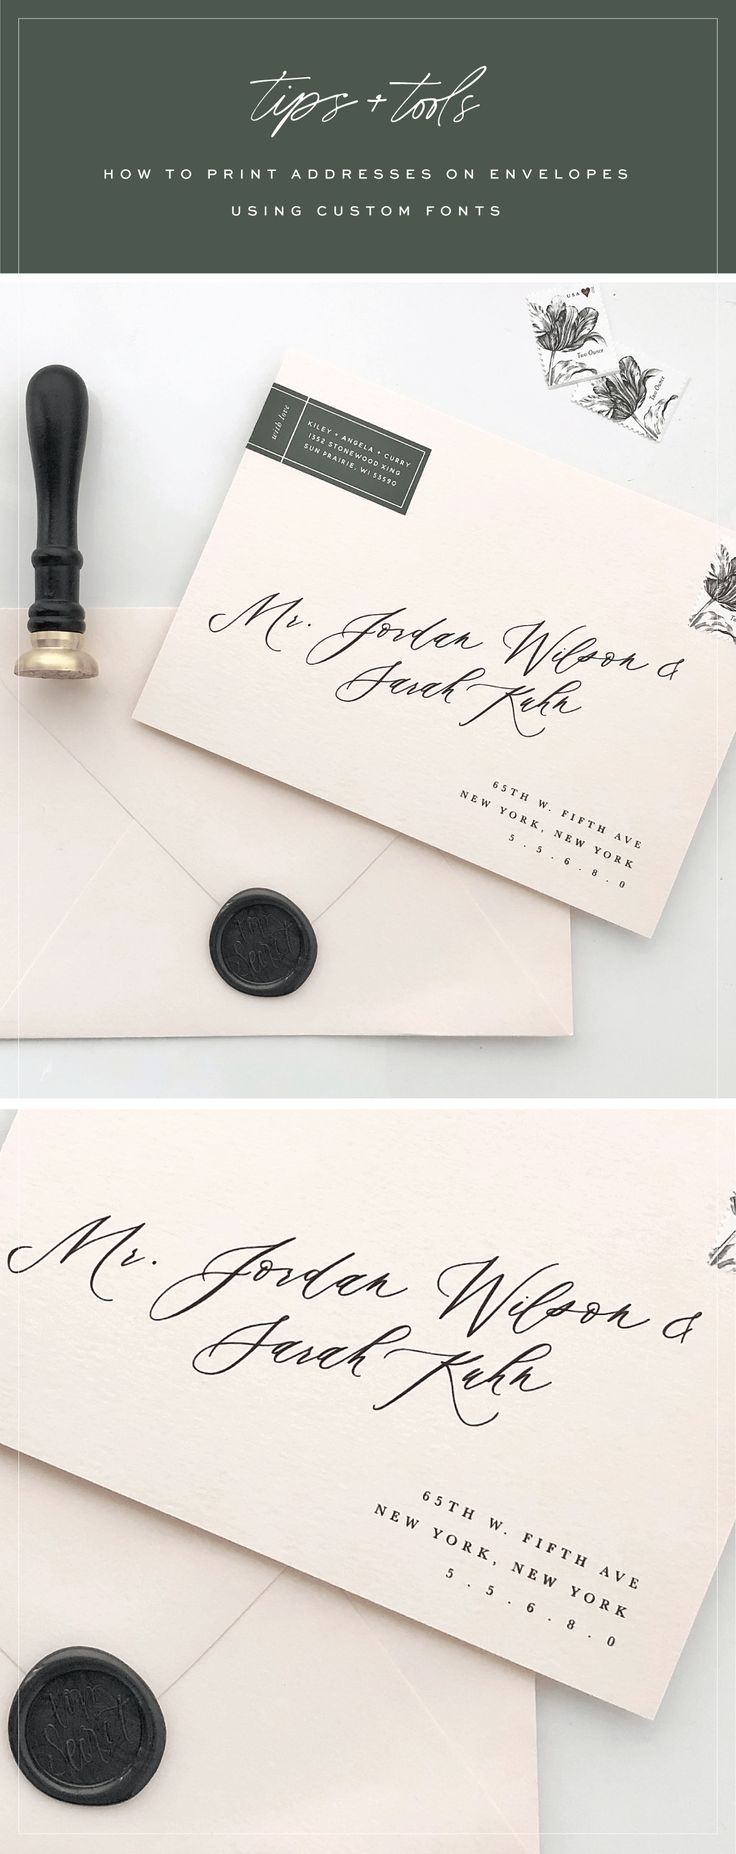 Tutorial : How to print addresses on envelopes using custom fonts : Saffron Avenue